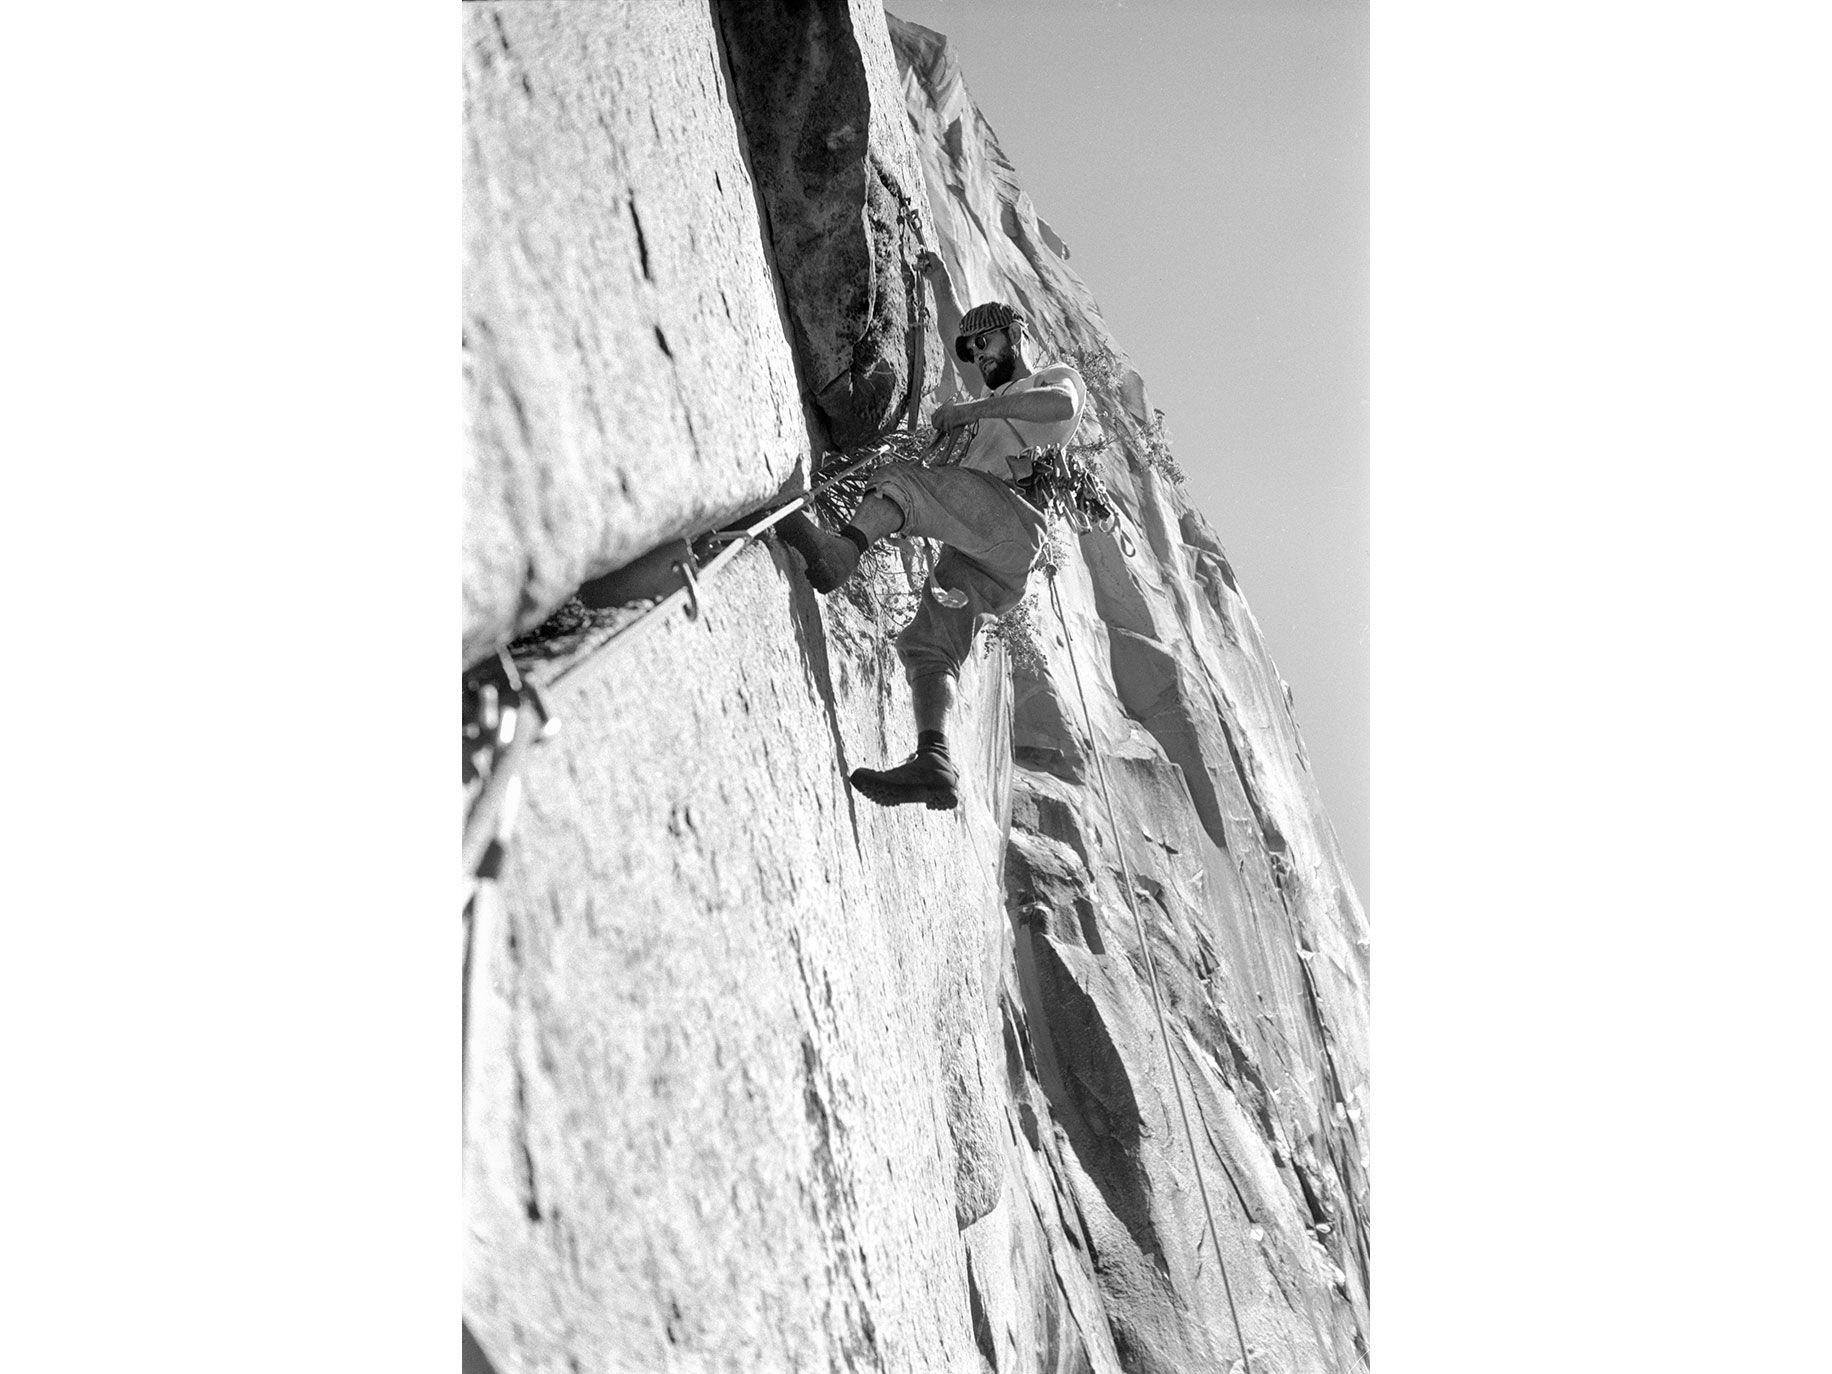 "Robbins ""aid"" climbing, by hanging from pitons driven into cracks, during the ascent of Salathe Wall of El Capitan in 1961."